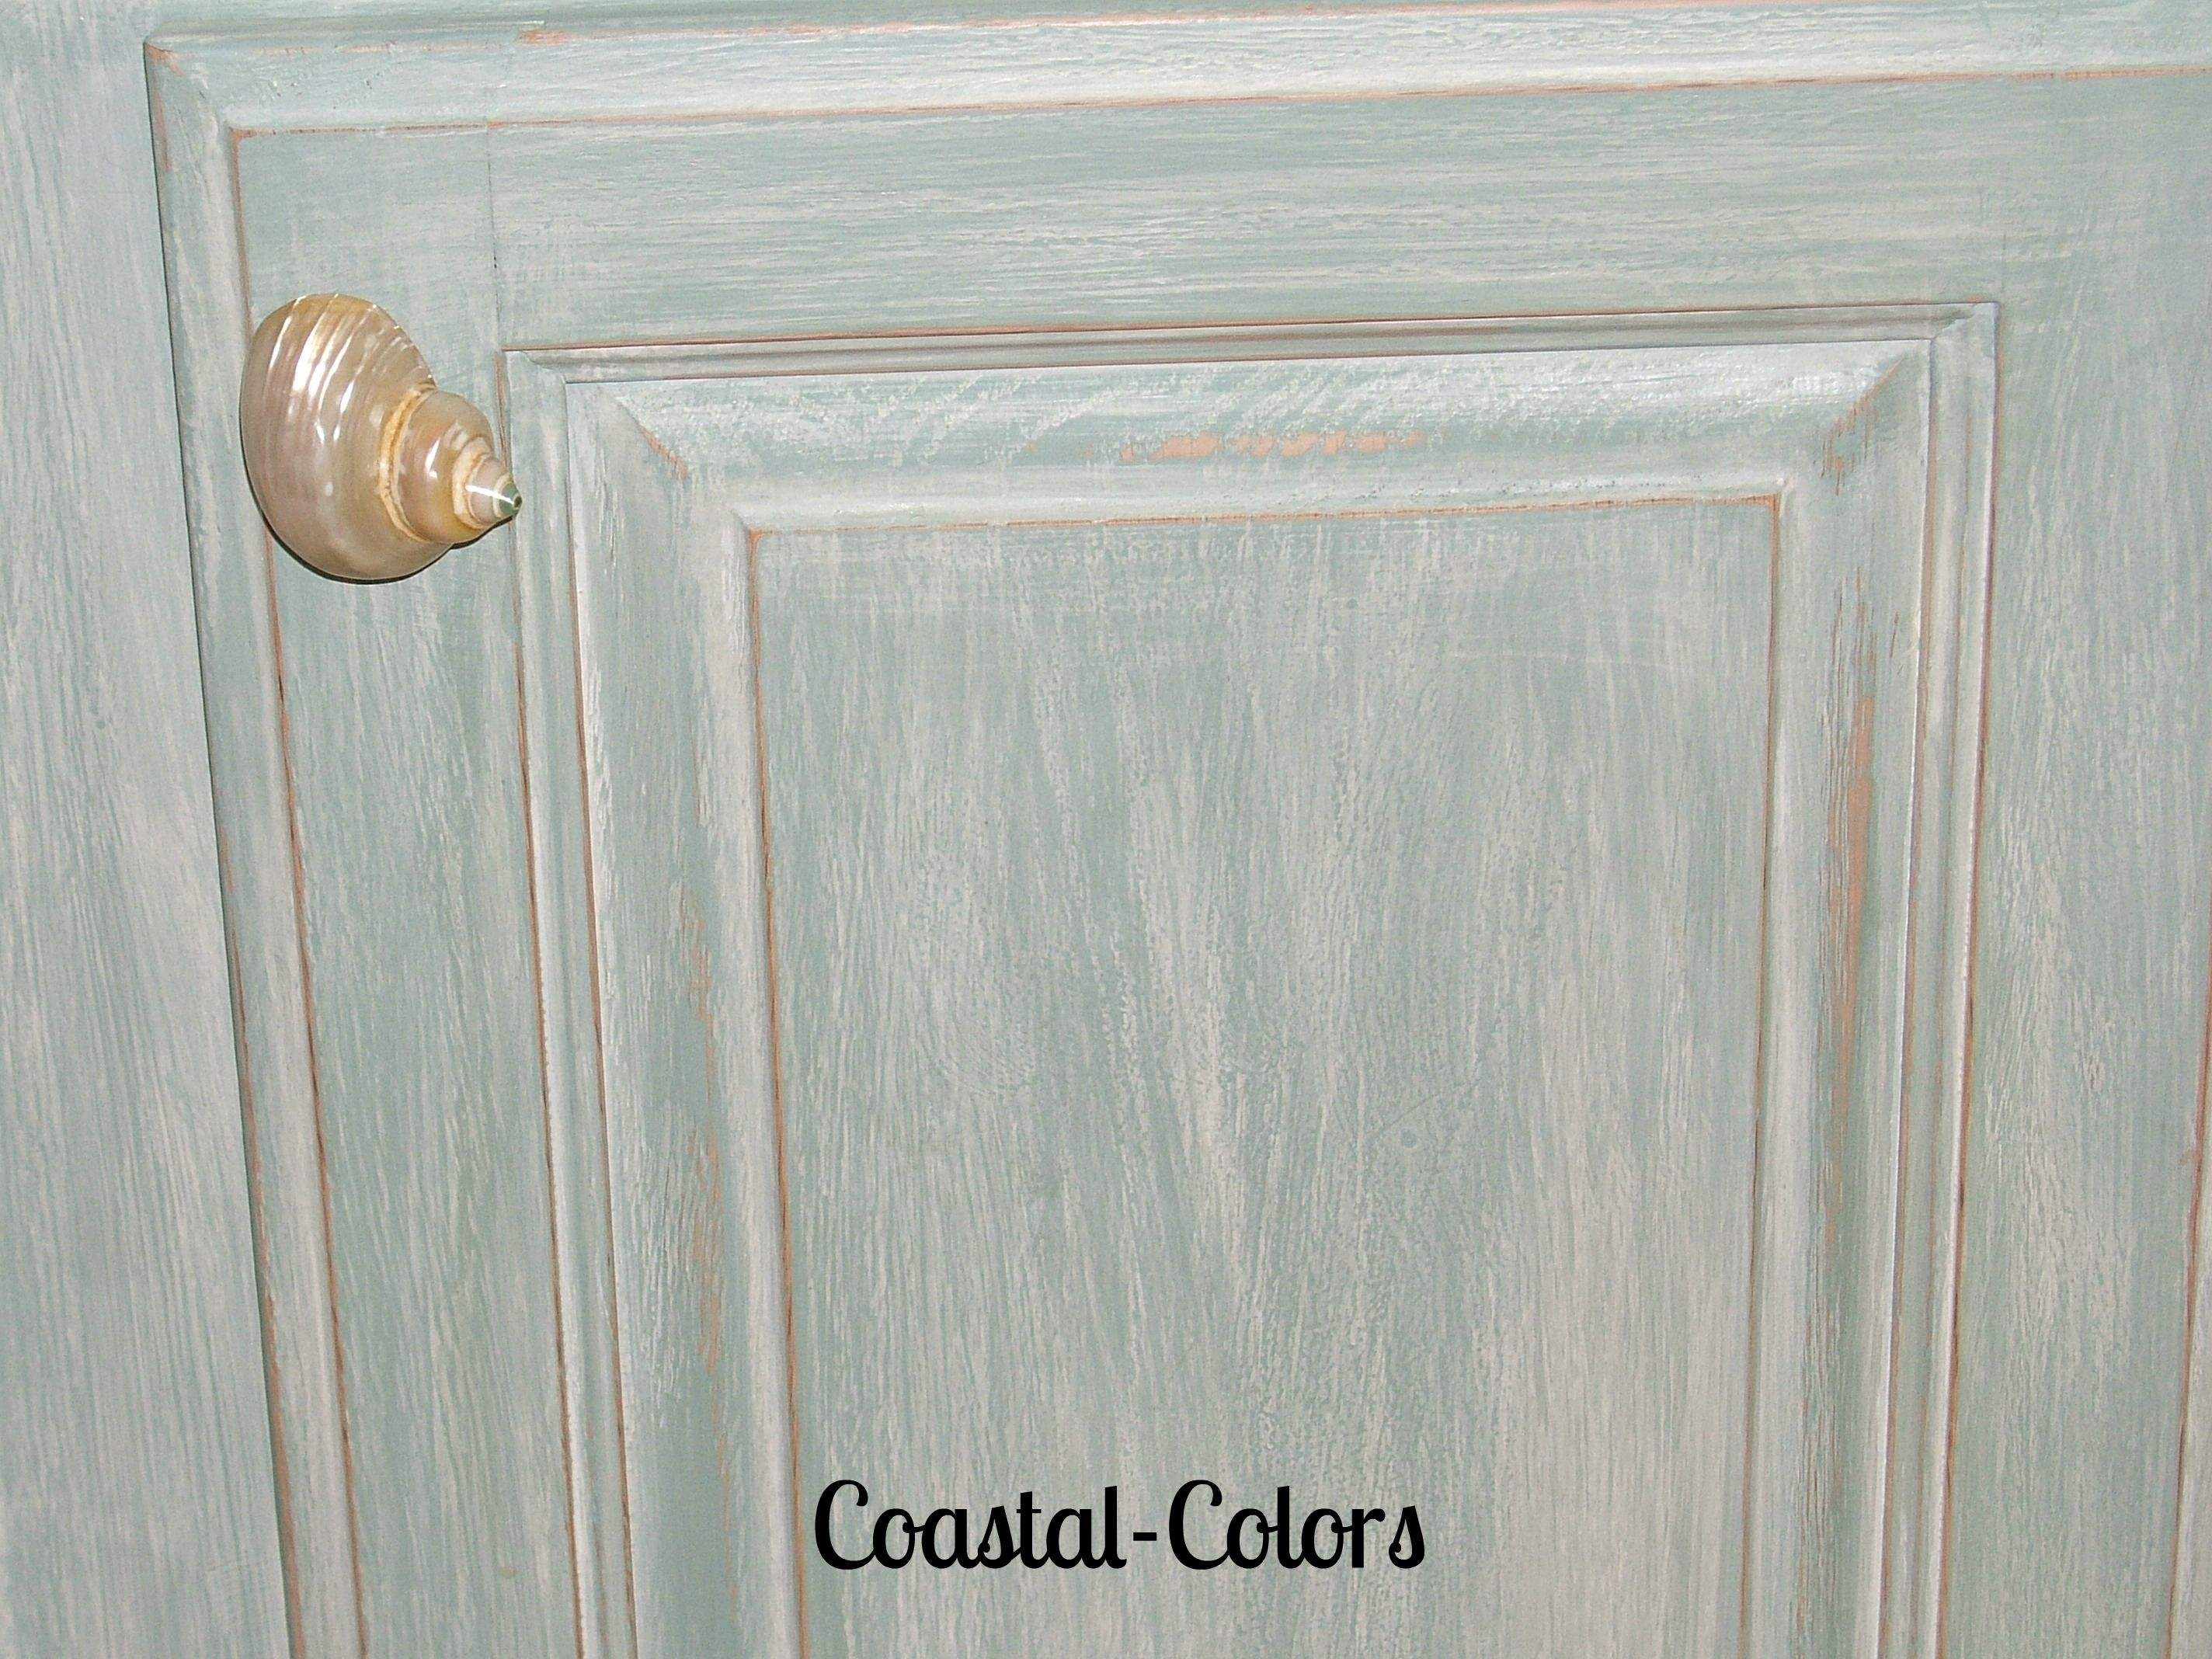 Beachy Chalk Painted Cabinets With A Color Wash- | Painted Furniture within Hartigan 2-Door Sideboards (Image 7 of 30)